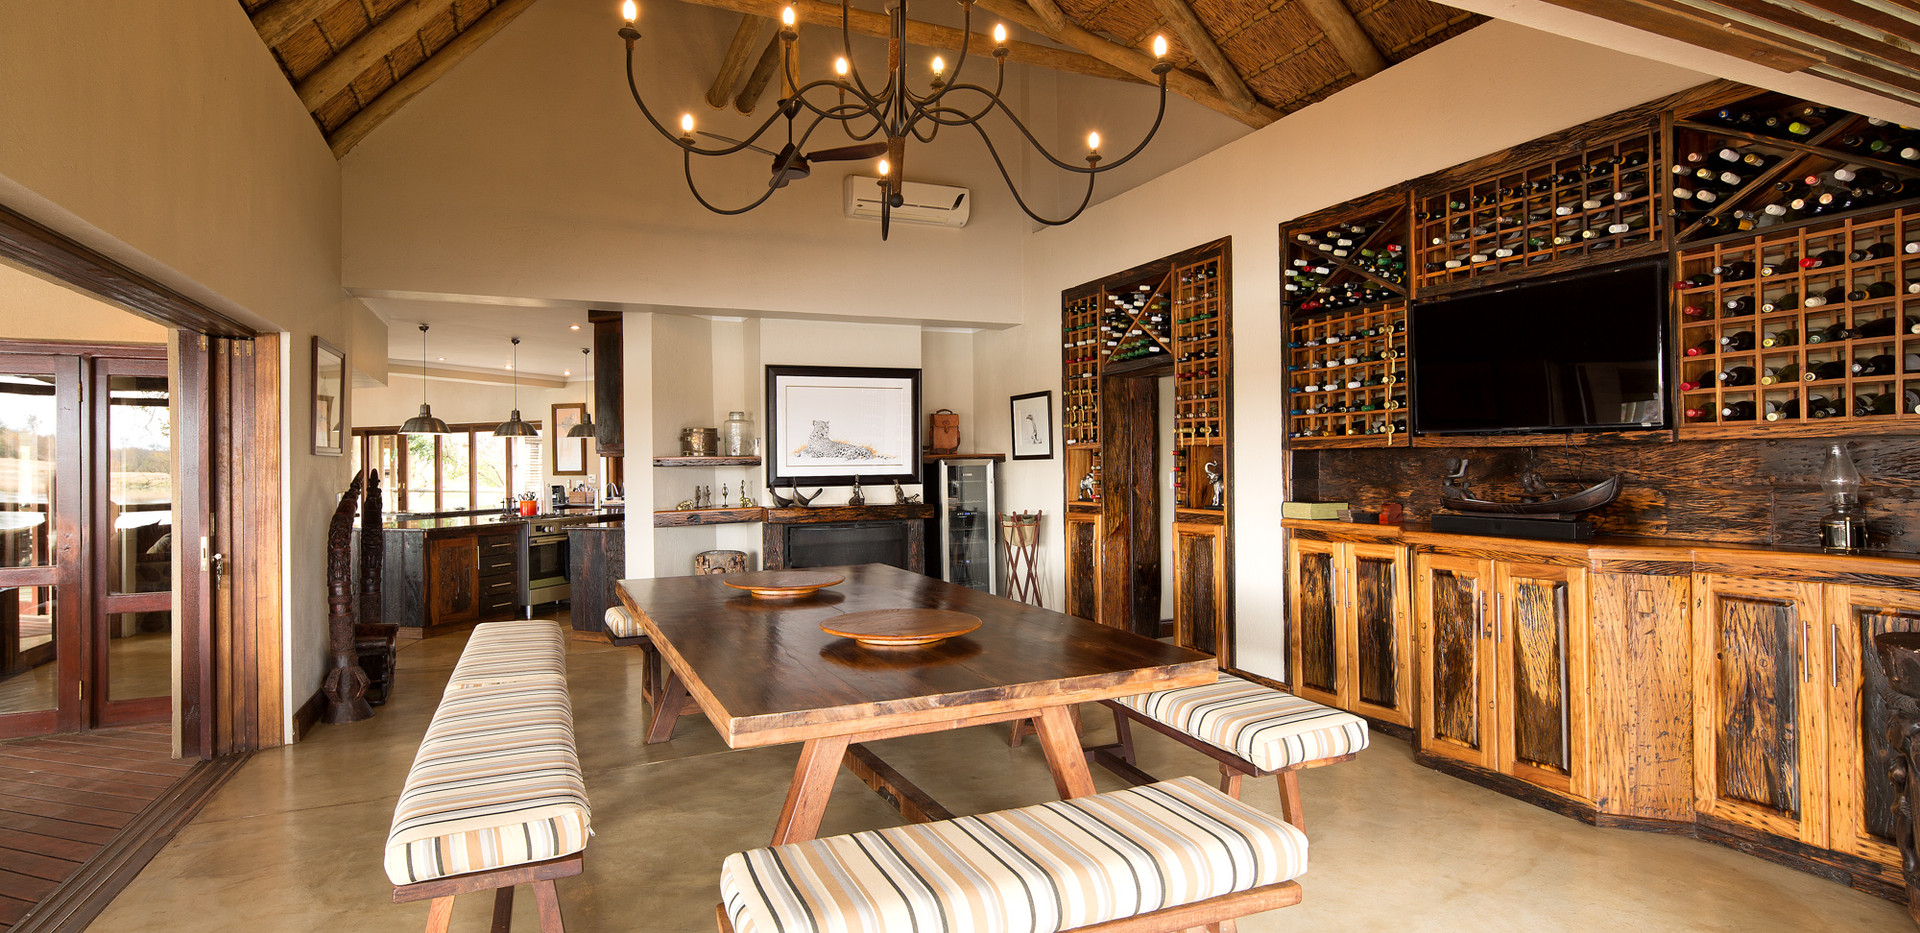 Enjoy our wine at Weaver's Nest Lodge